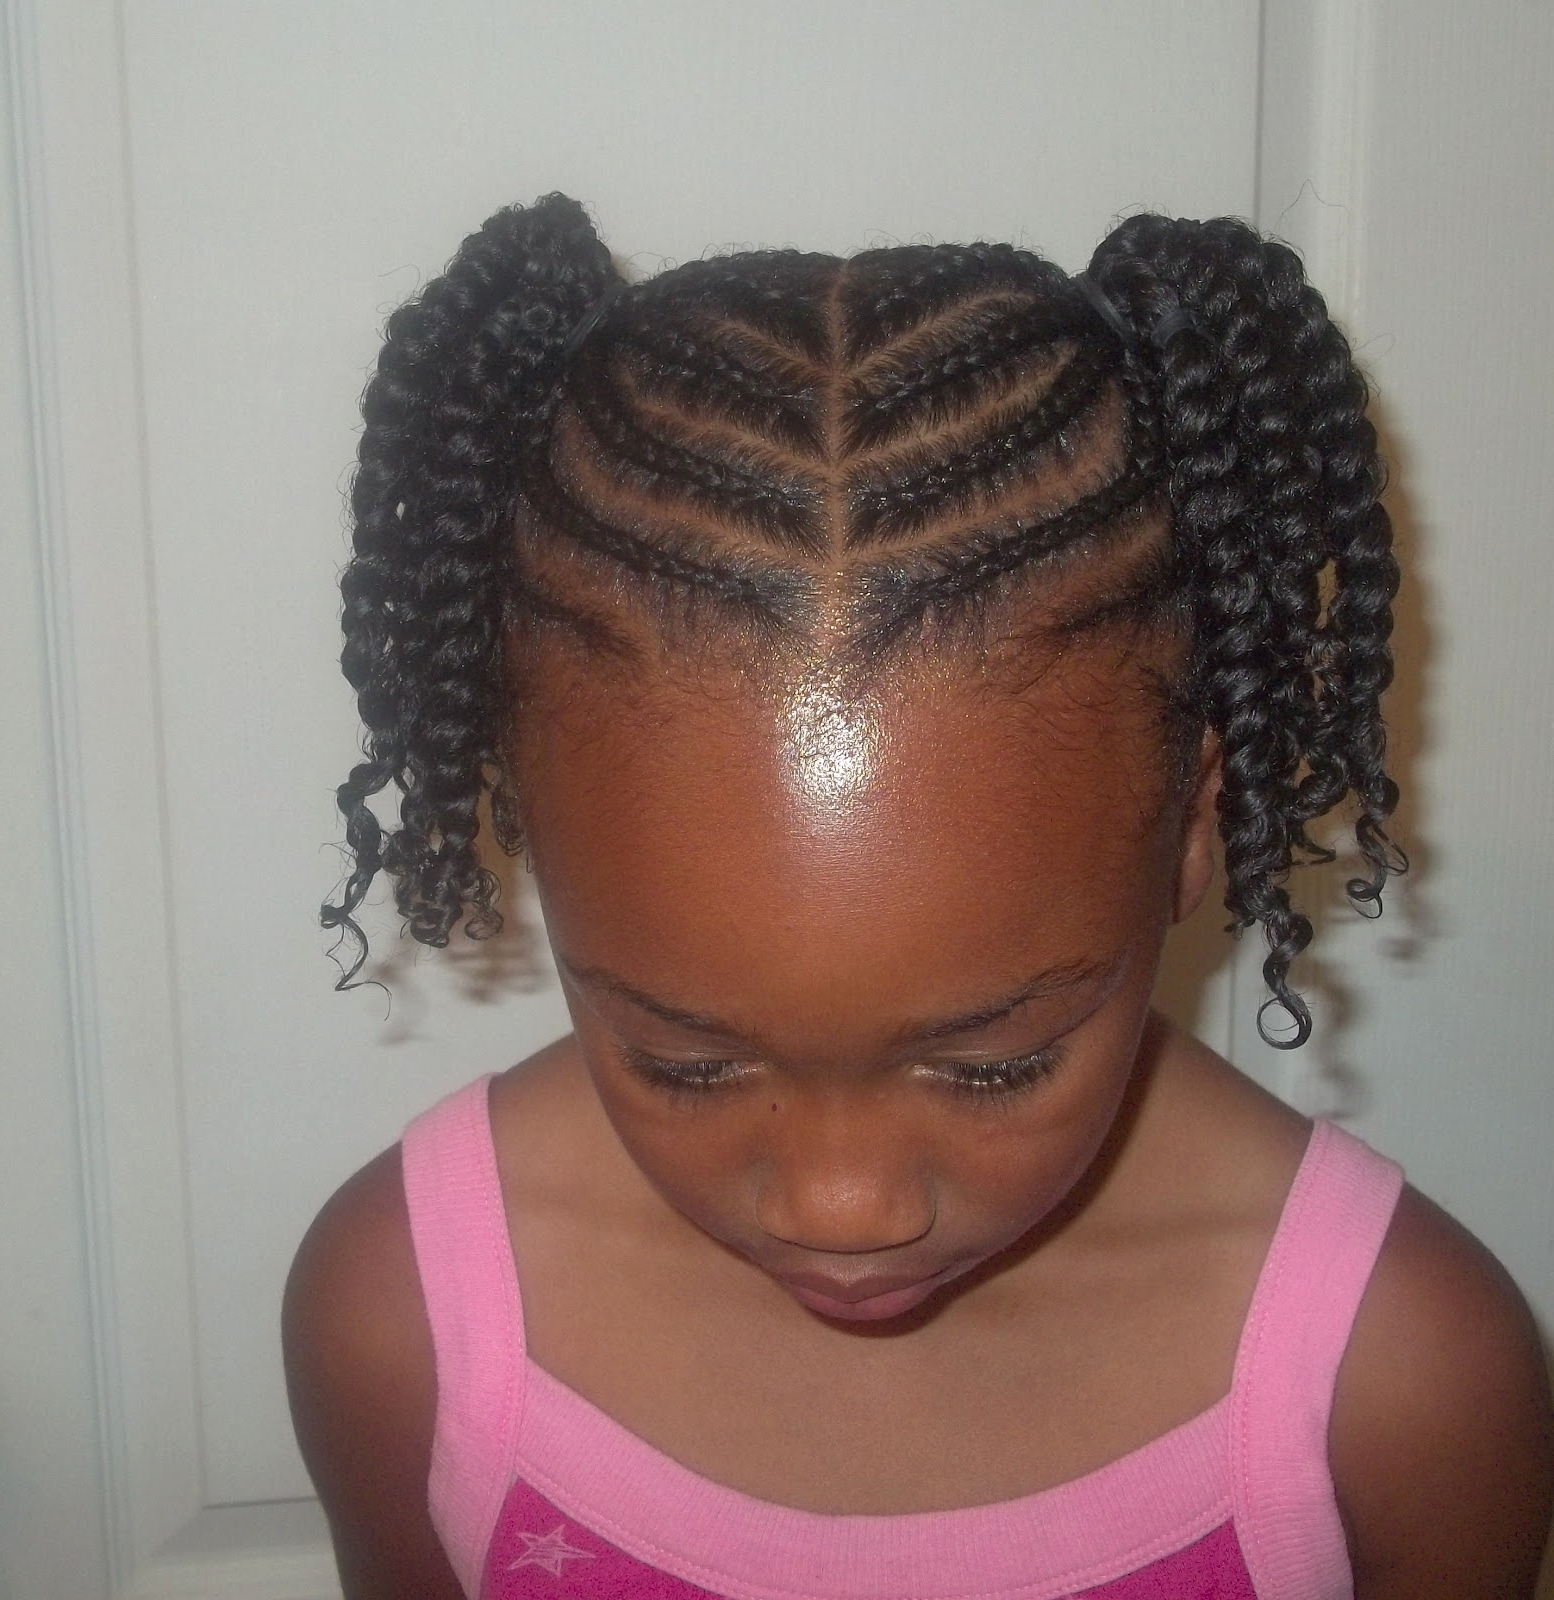 Cornrow Styles For Kids Best Of Cornrow Hairstyles For Kids Hair Is Pertaining To Best And Newest Cornrows Hairstyles For Toddlers (View 5 of 15)